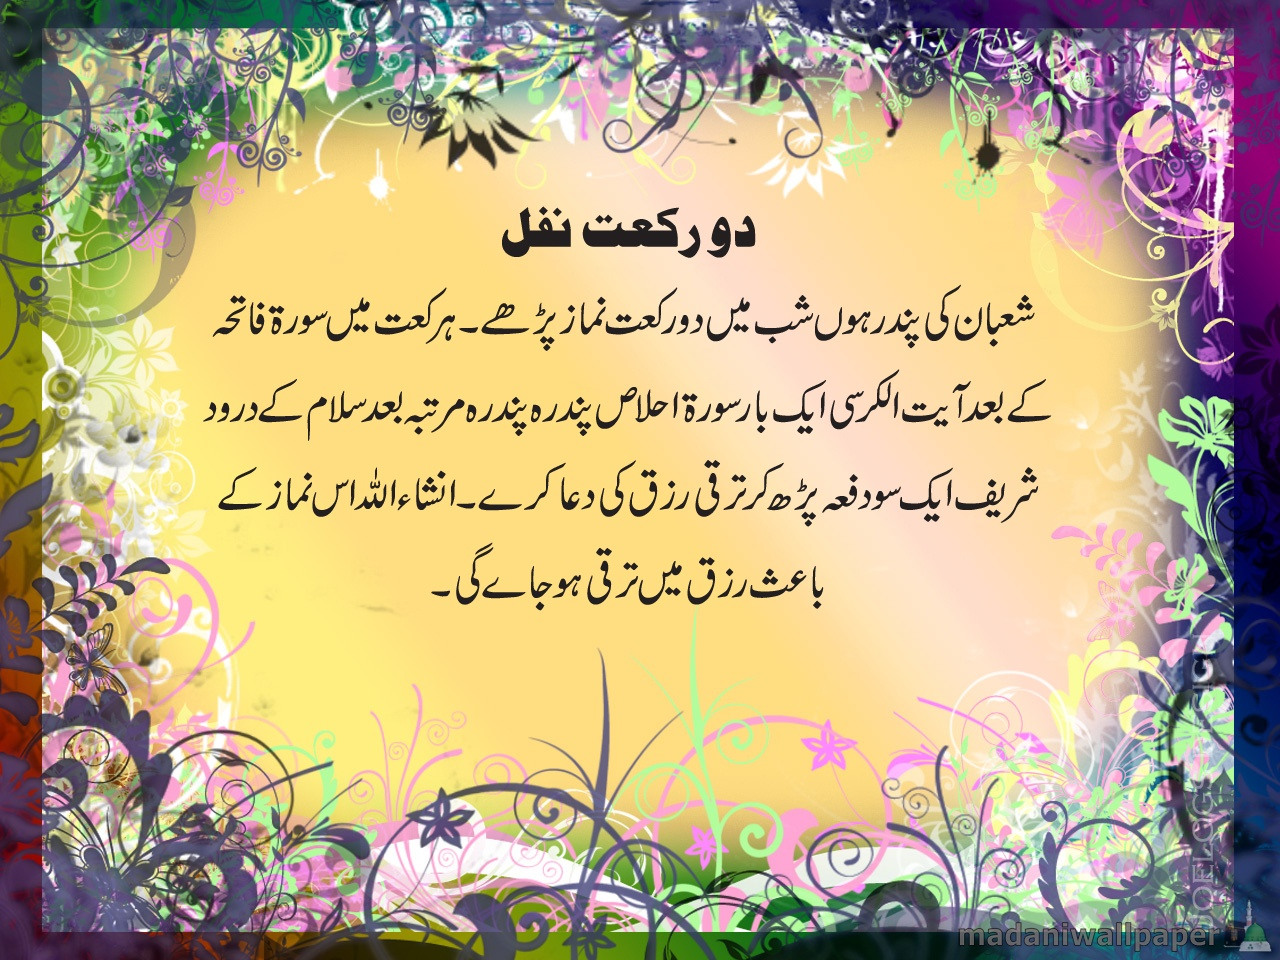 new_shab_e_barat_wallpaper-webstudy.pk